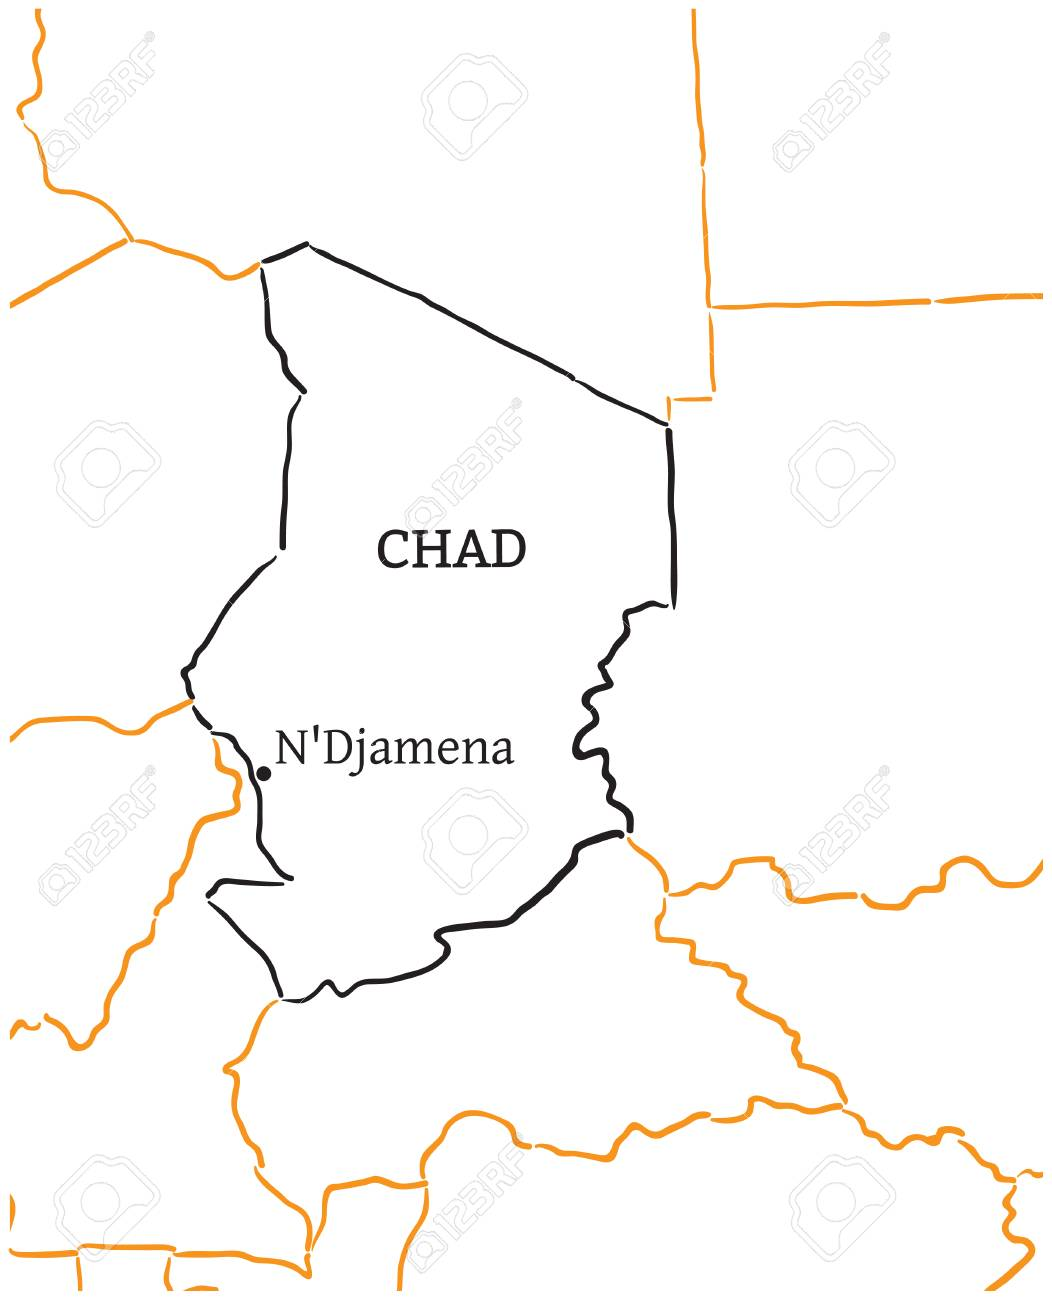 N Djamena On A Map Of Africa on cairo on a map of africa, khartoum on a map of africa, dakar on a map of africa, abuja on a map of africa, djibouti on a map of africa, maputo on a map of africa, ouagadougou on a map of africa, chad on a map of africa, mogadishu on a map of africa, freetown on a map of africa, algiers on a map of africa,